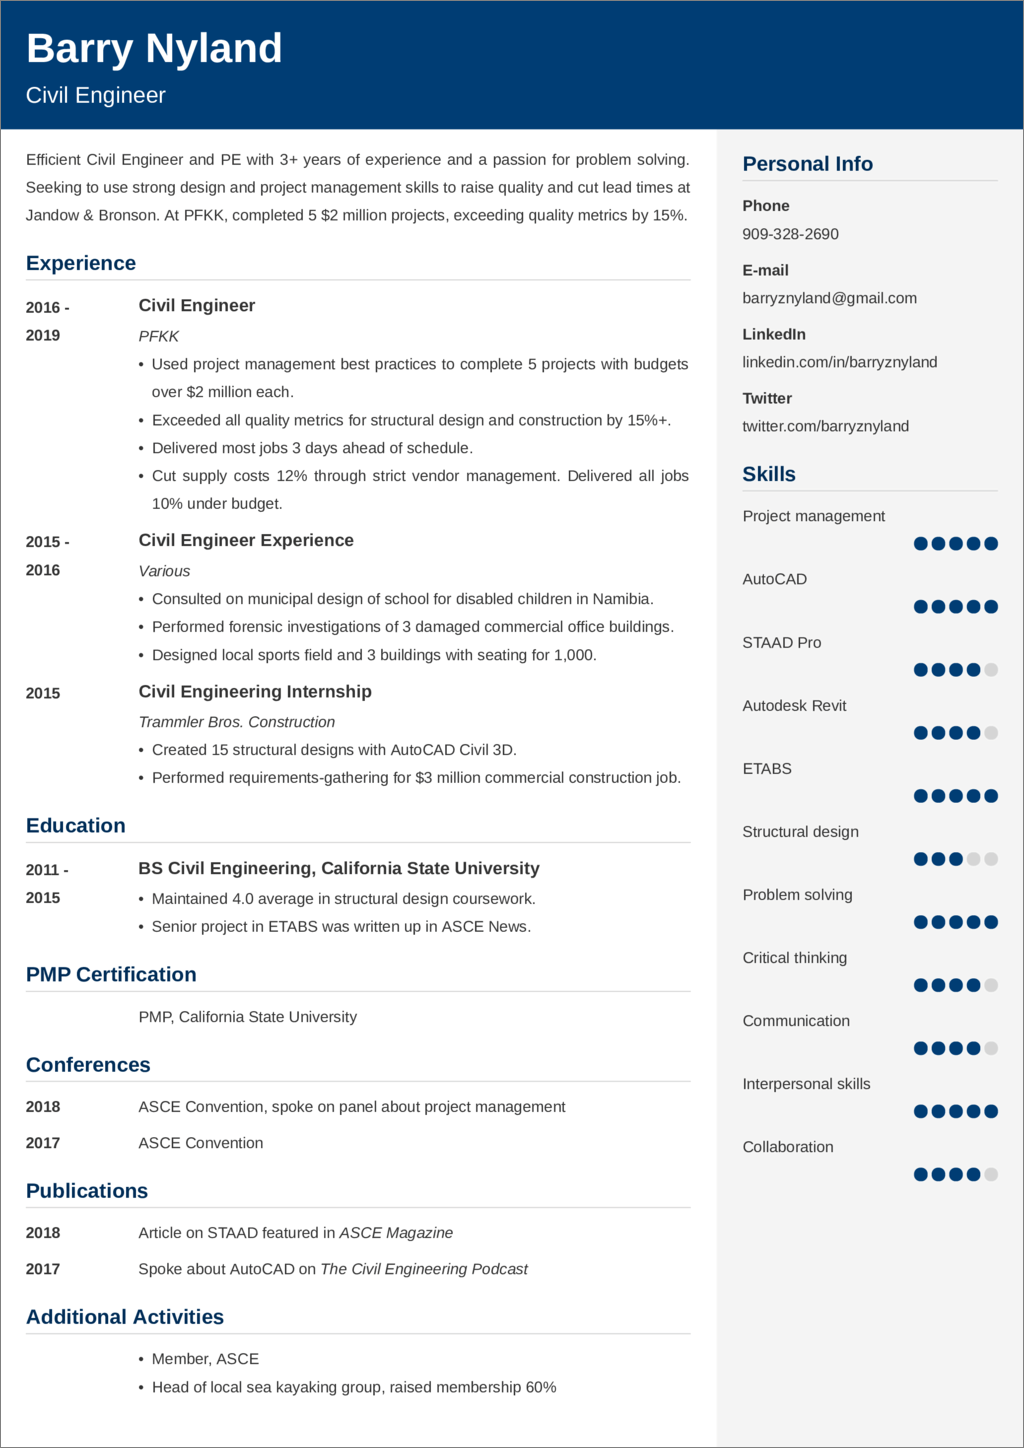 civil engineer resume sample—20 examples and writing tips